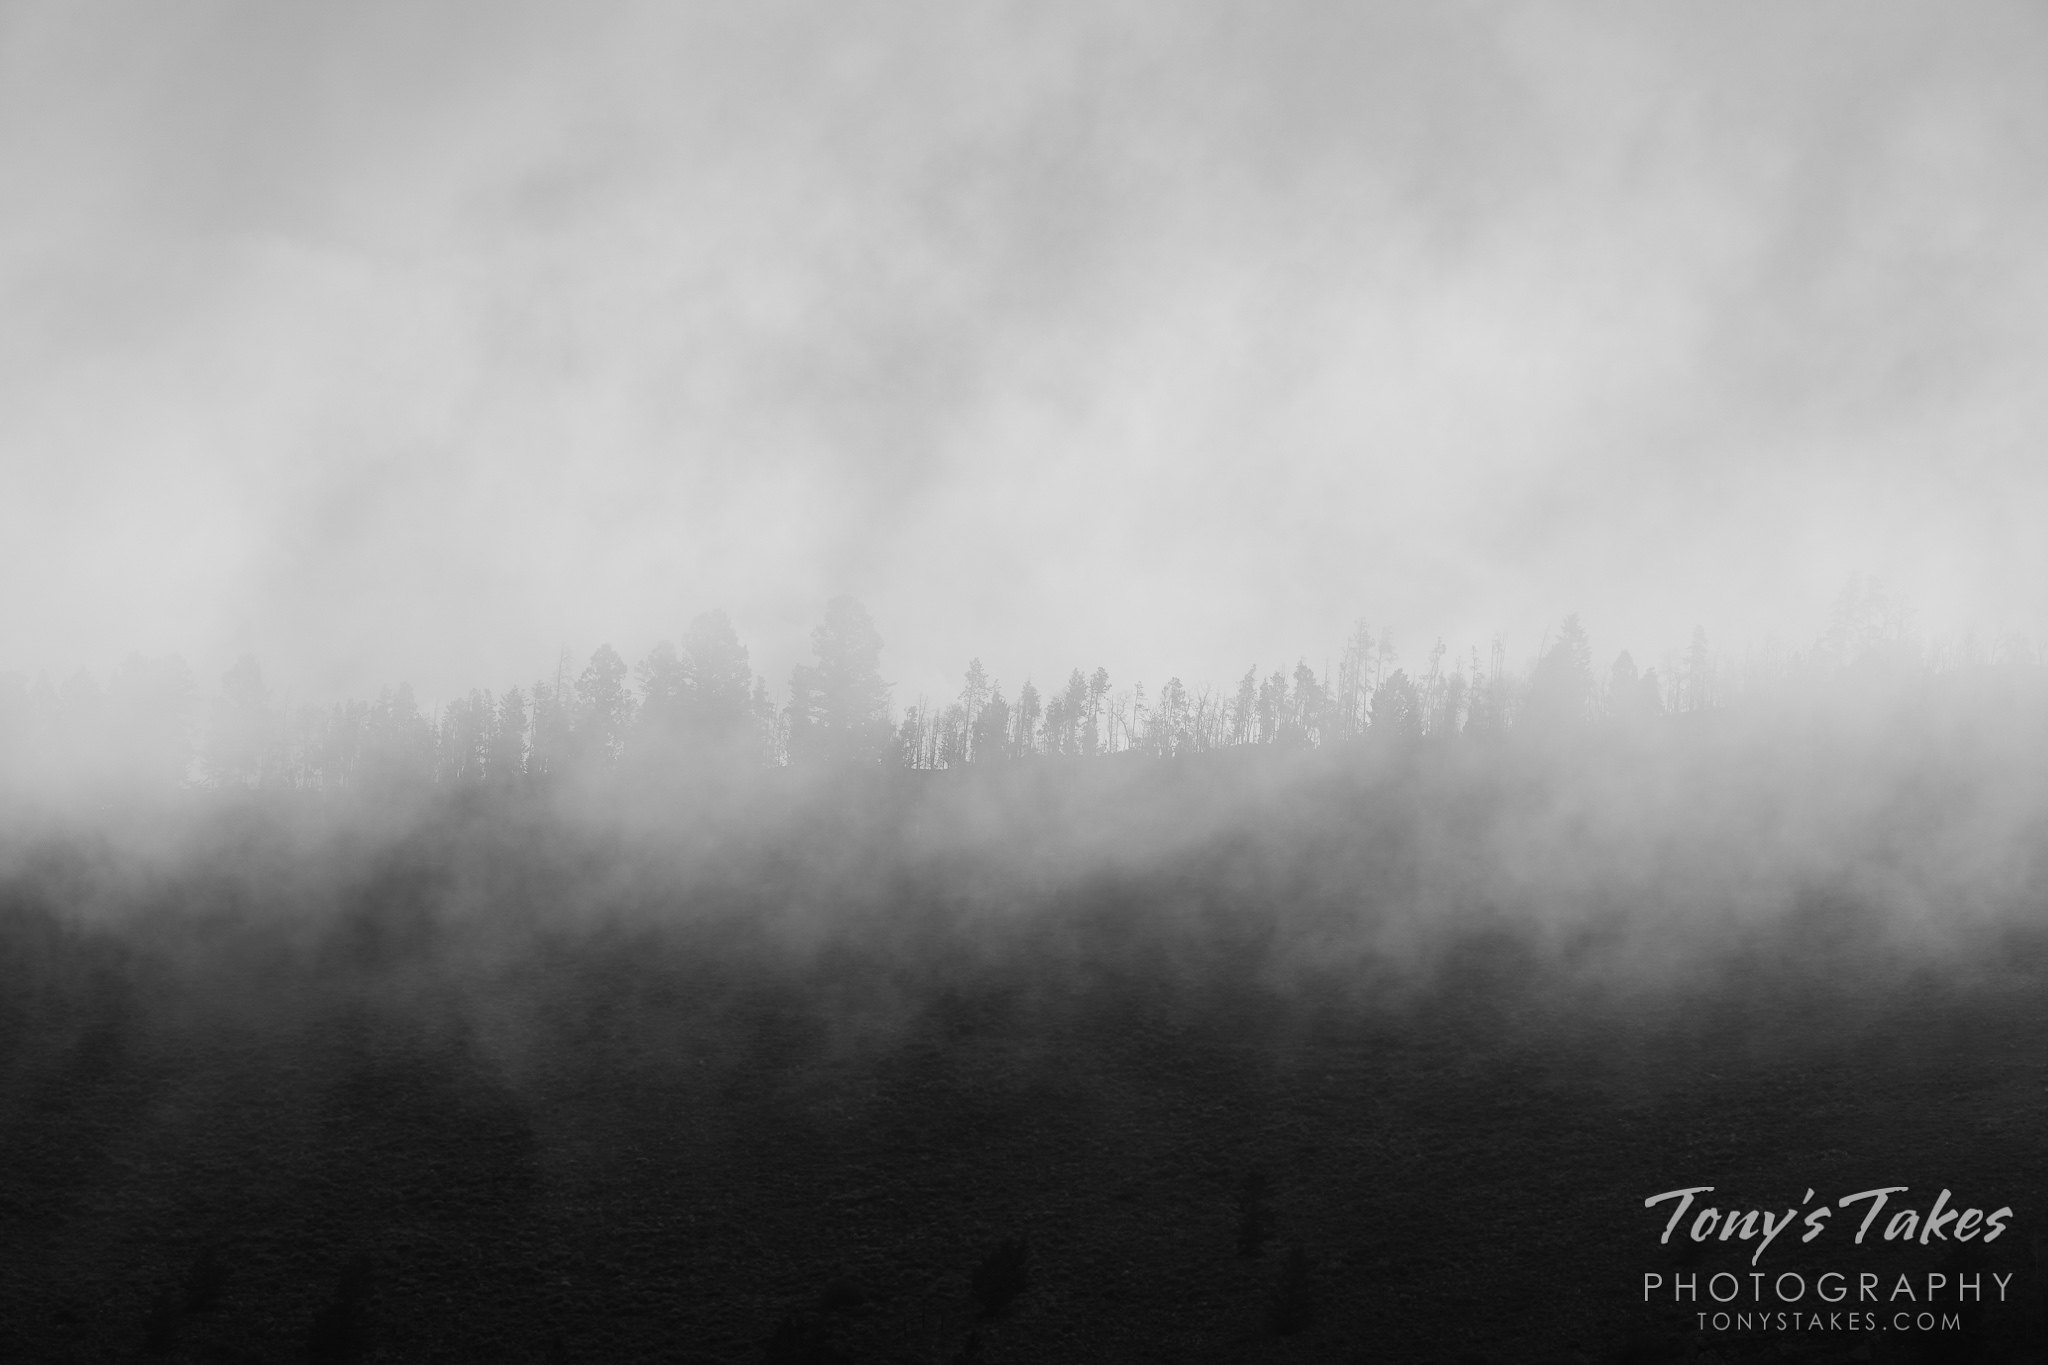 Mountaintop trees shrouded in low clouds. (© Tony's Takes)